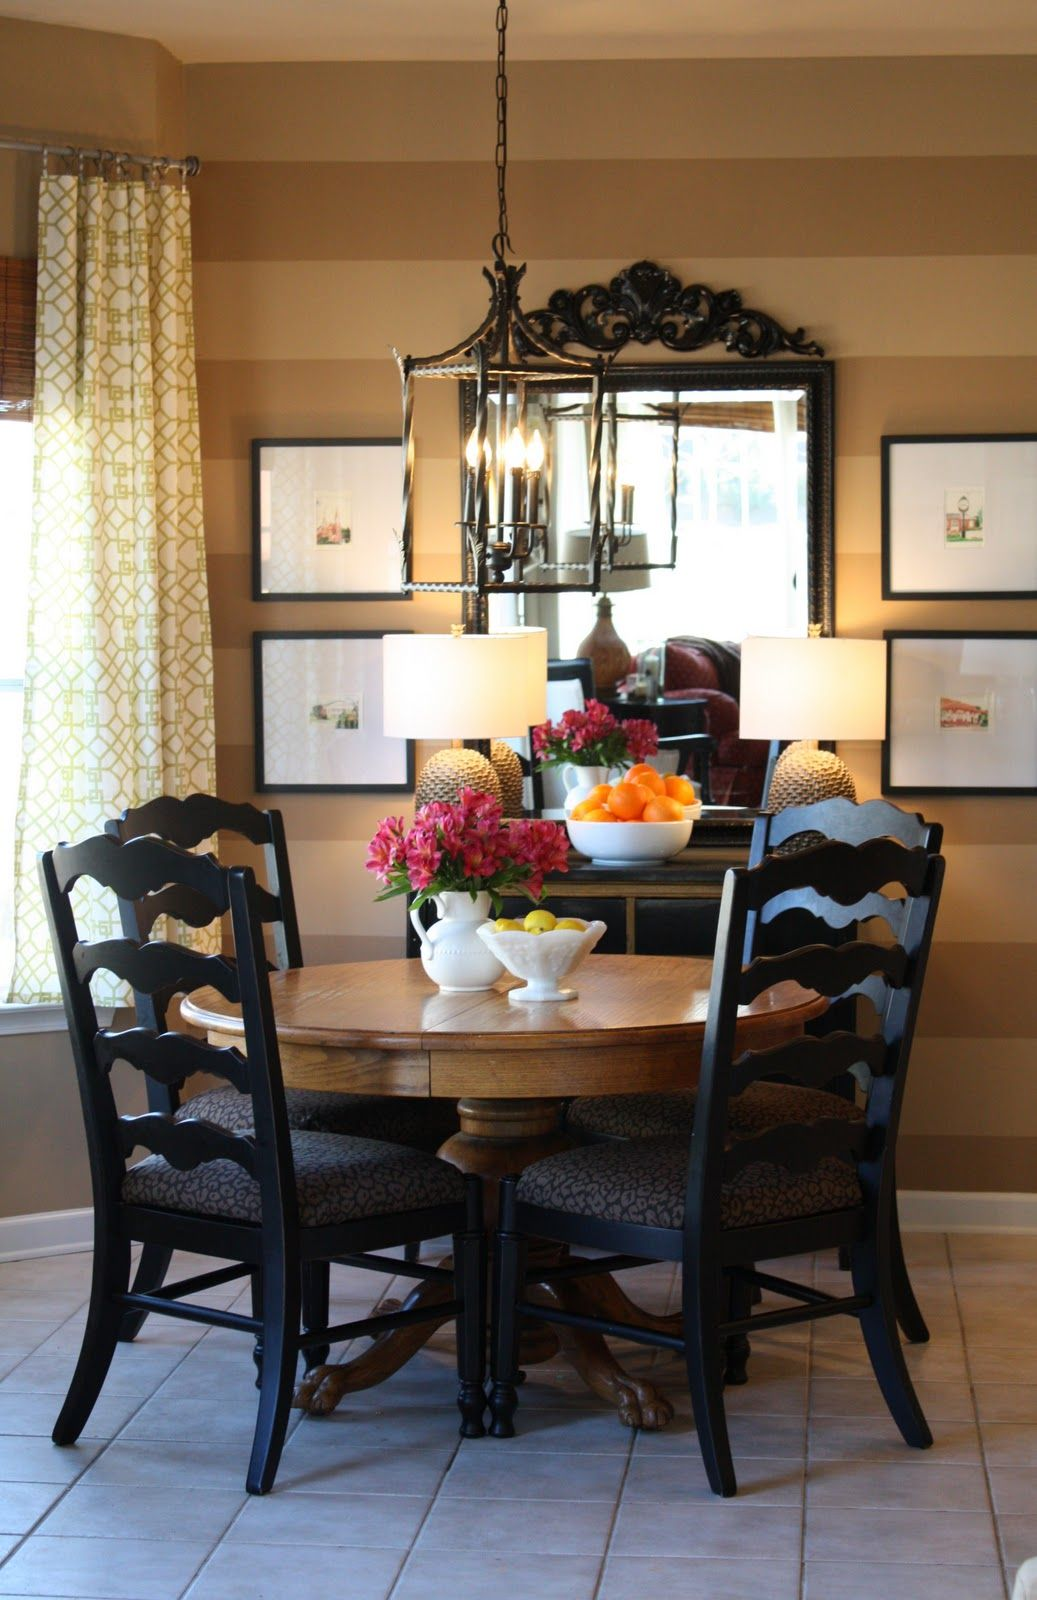 Small Round Wood Table With Painted Black Chairs Striped Walls Amazing Black Wood Dining Room Table Decorating Design